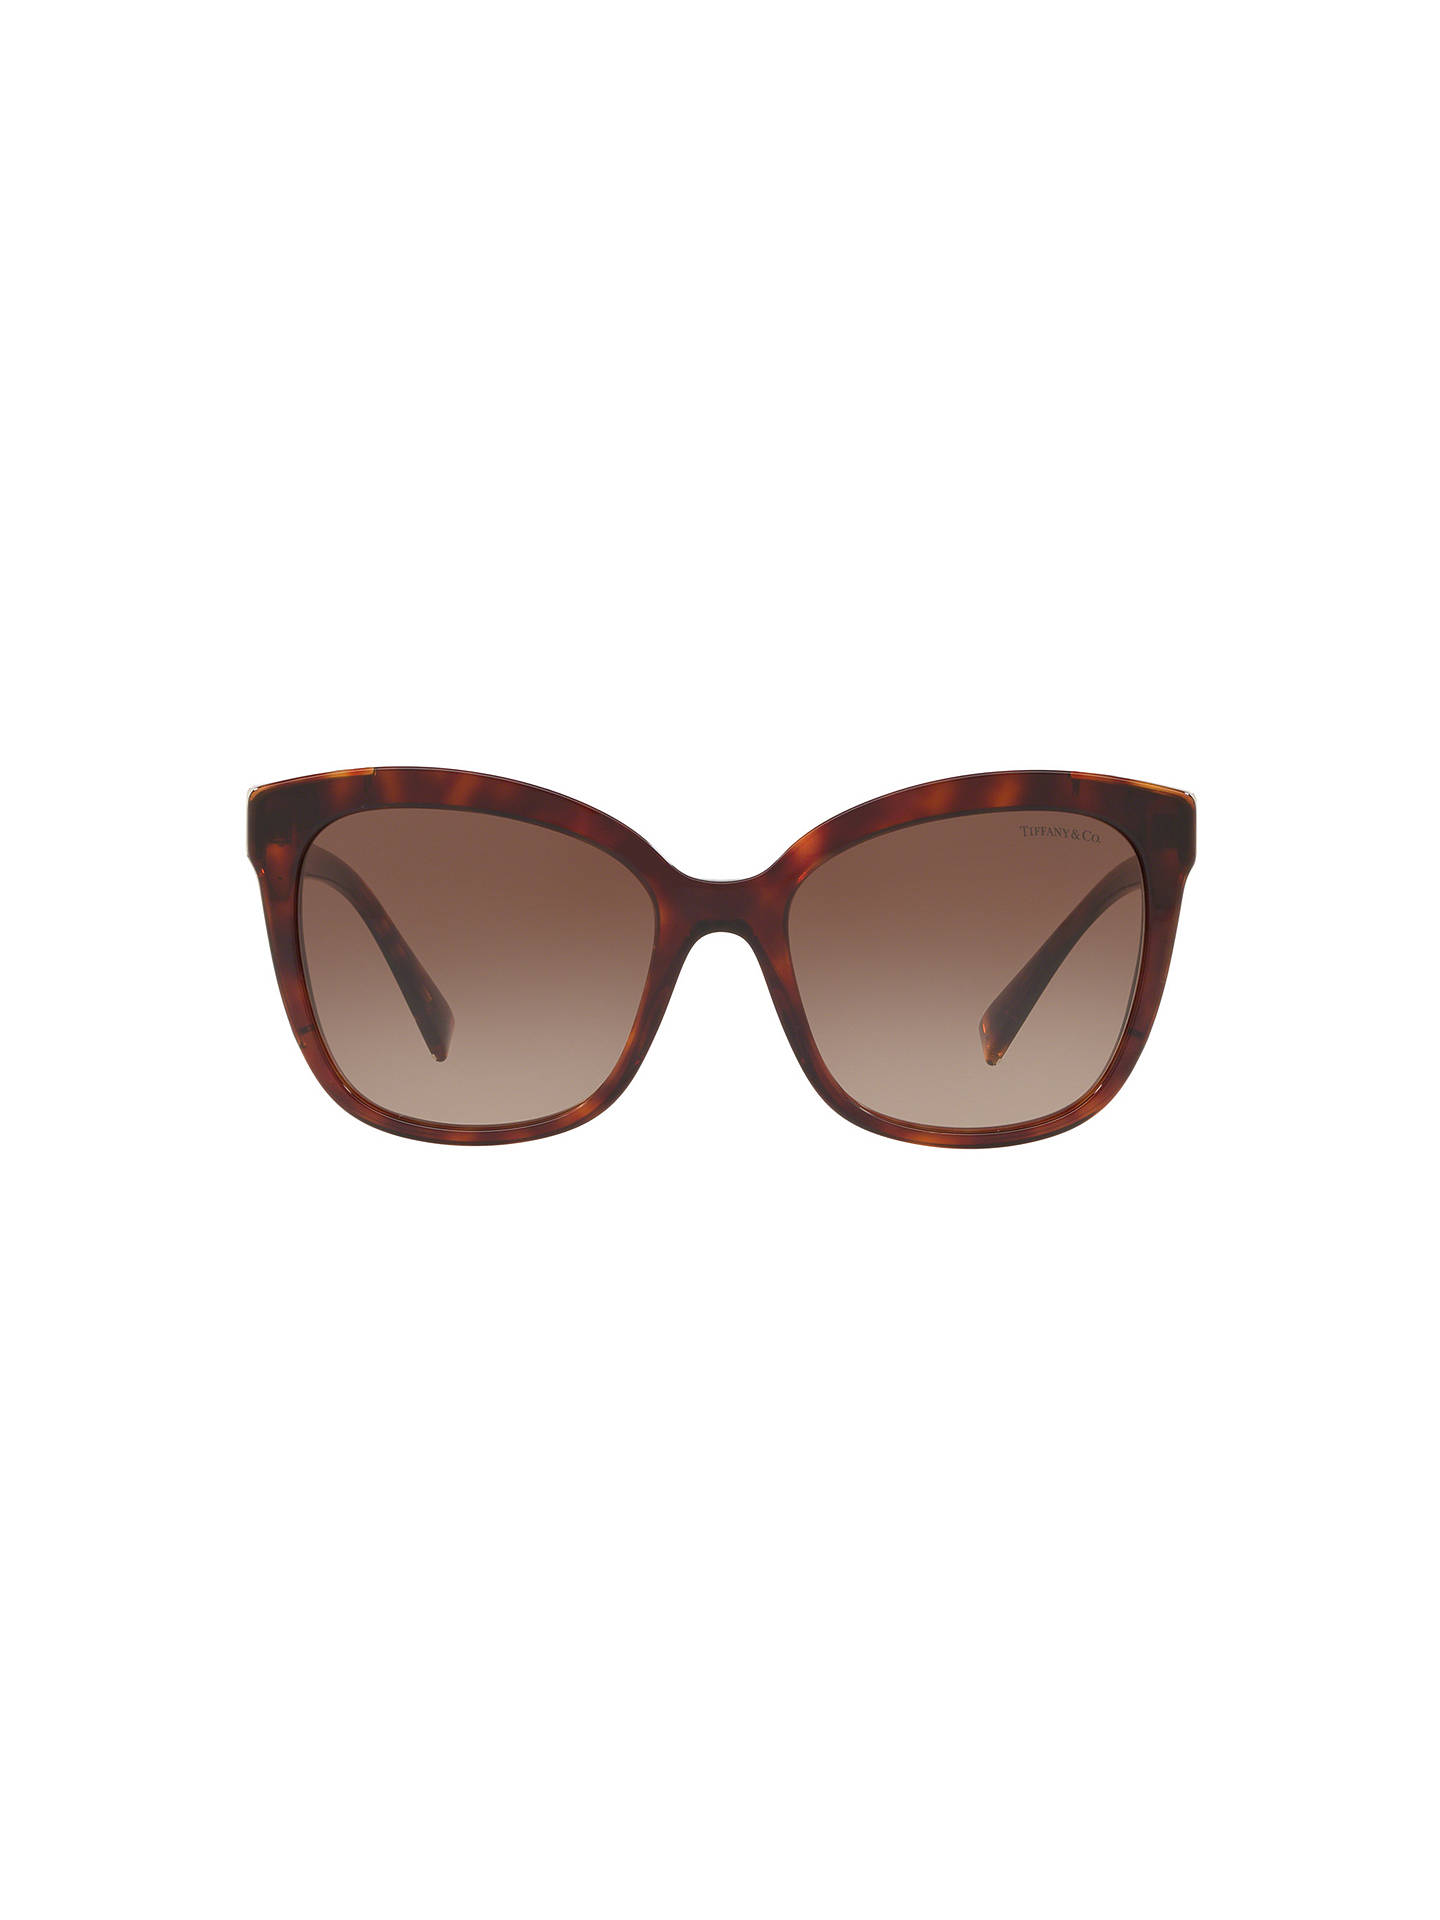 BuyTiffany & Co TF4150 Women's Embellished Square Sunglasses, Tortoise/Brown Gradient Online at johnlewis.com